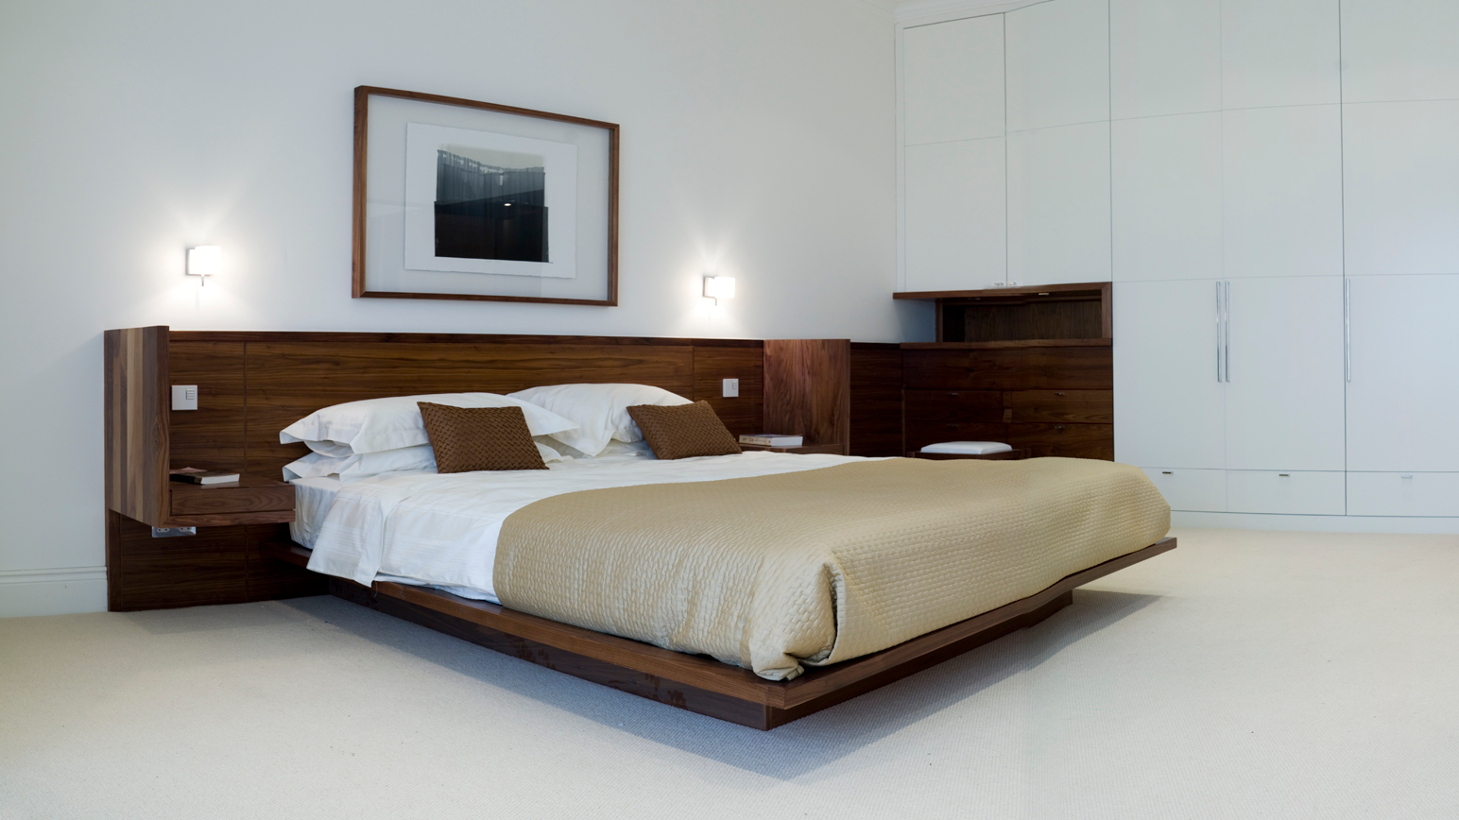 Bespoke Contemporary Bedroom Furniture Design- Penthouse Apartments - Penthouse Master Bedroom Design Photograph